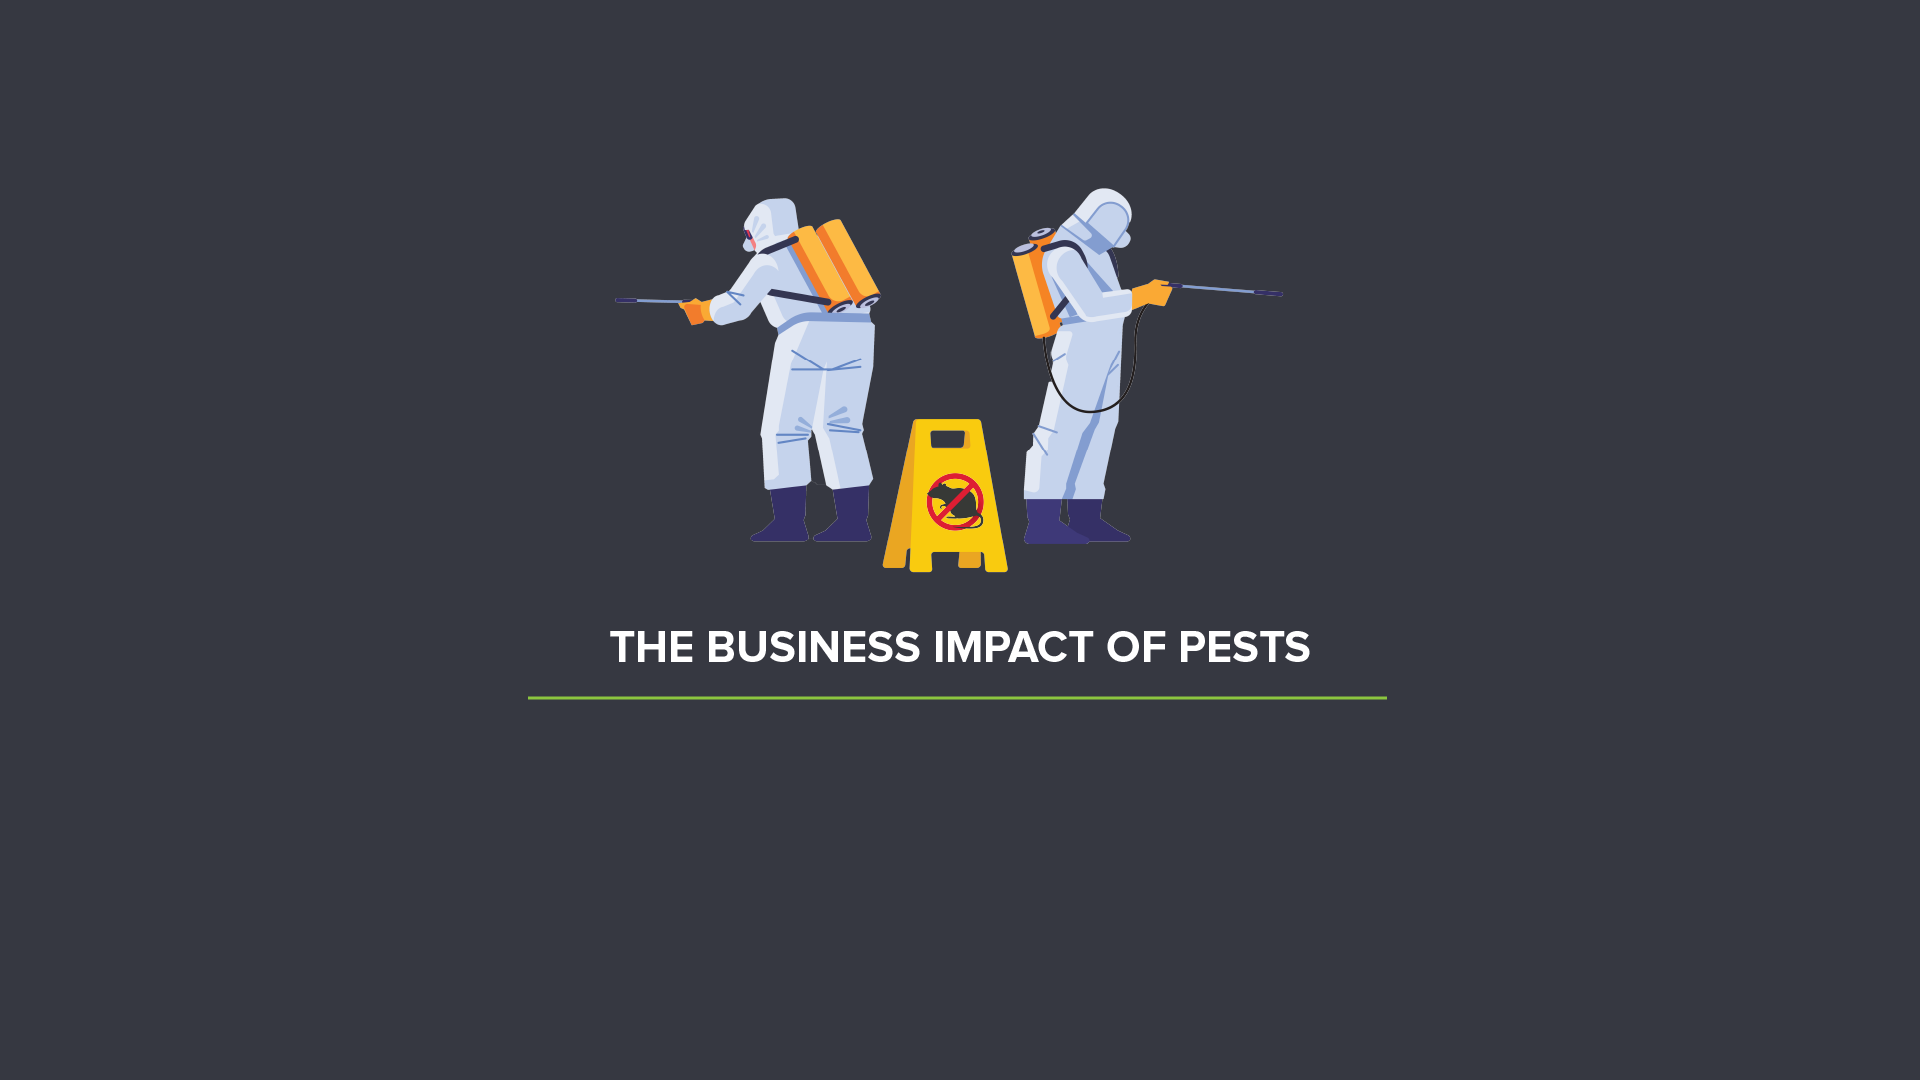 The Business Impact of Pests